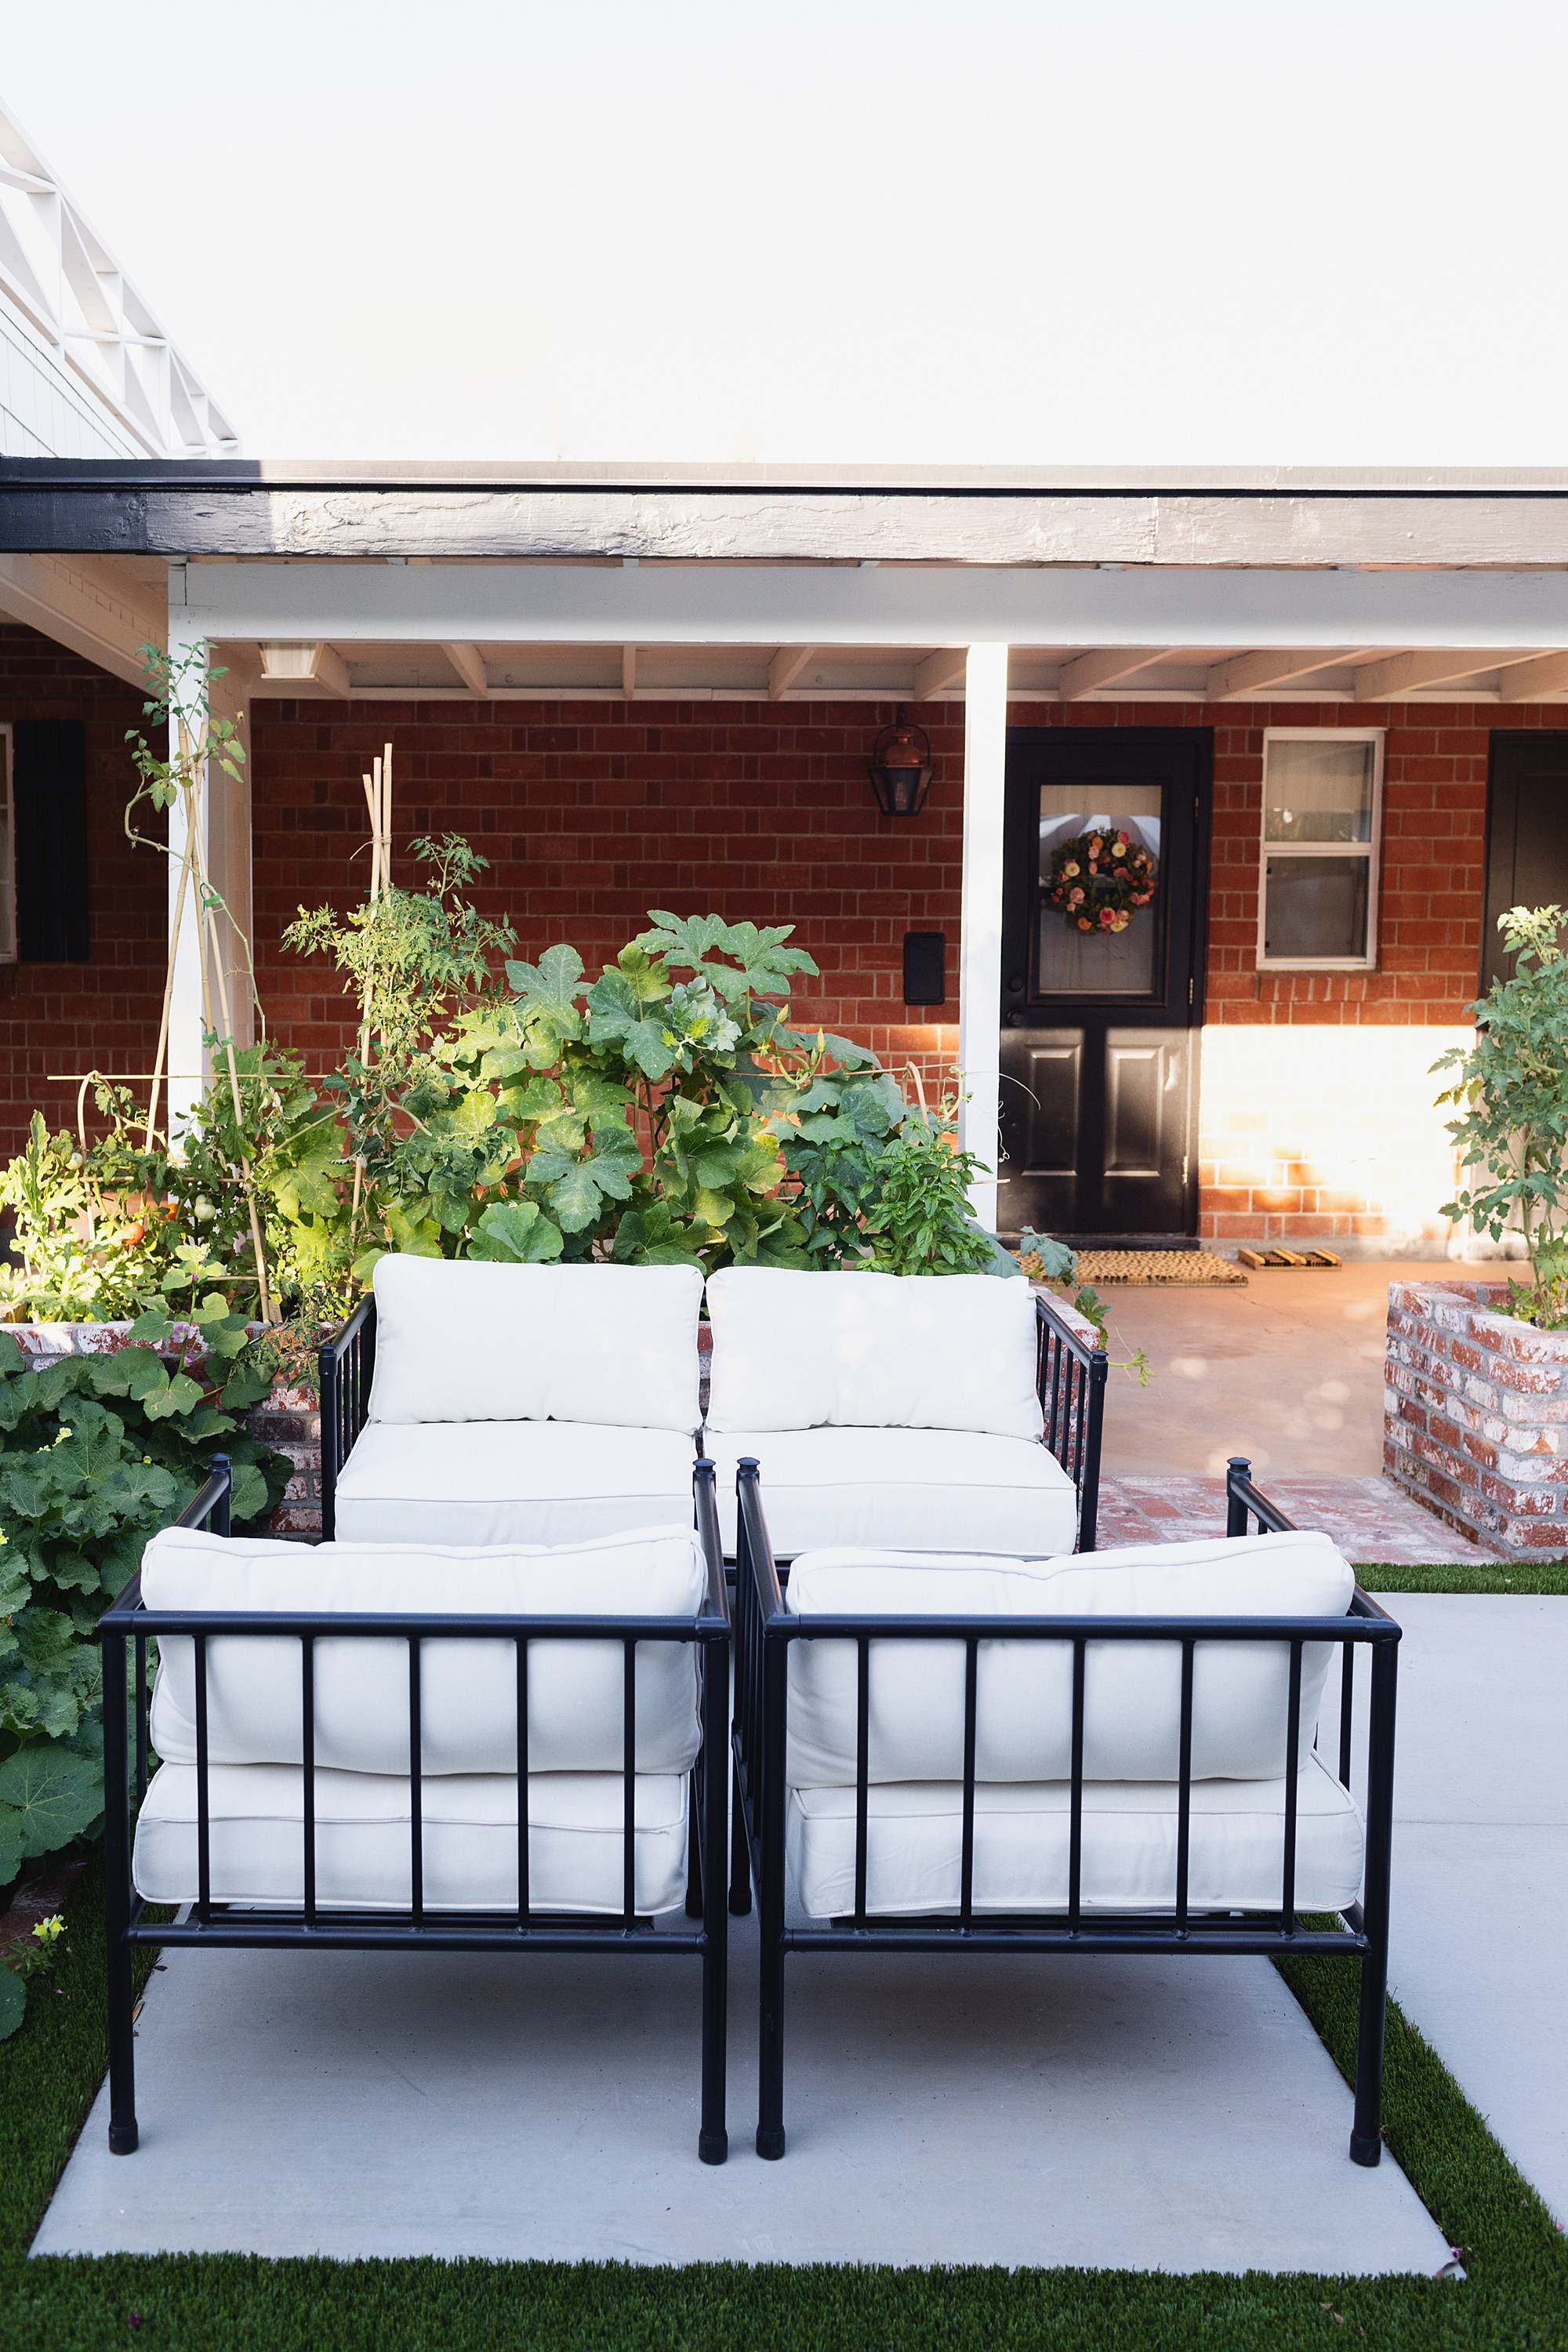 patio furniture metal black and white - AFTER photos of new #garden area see post